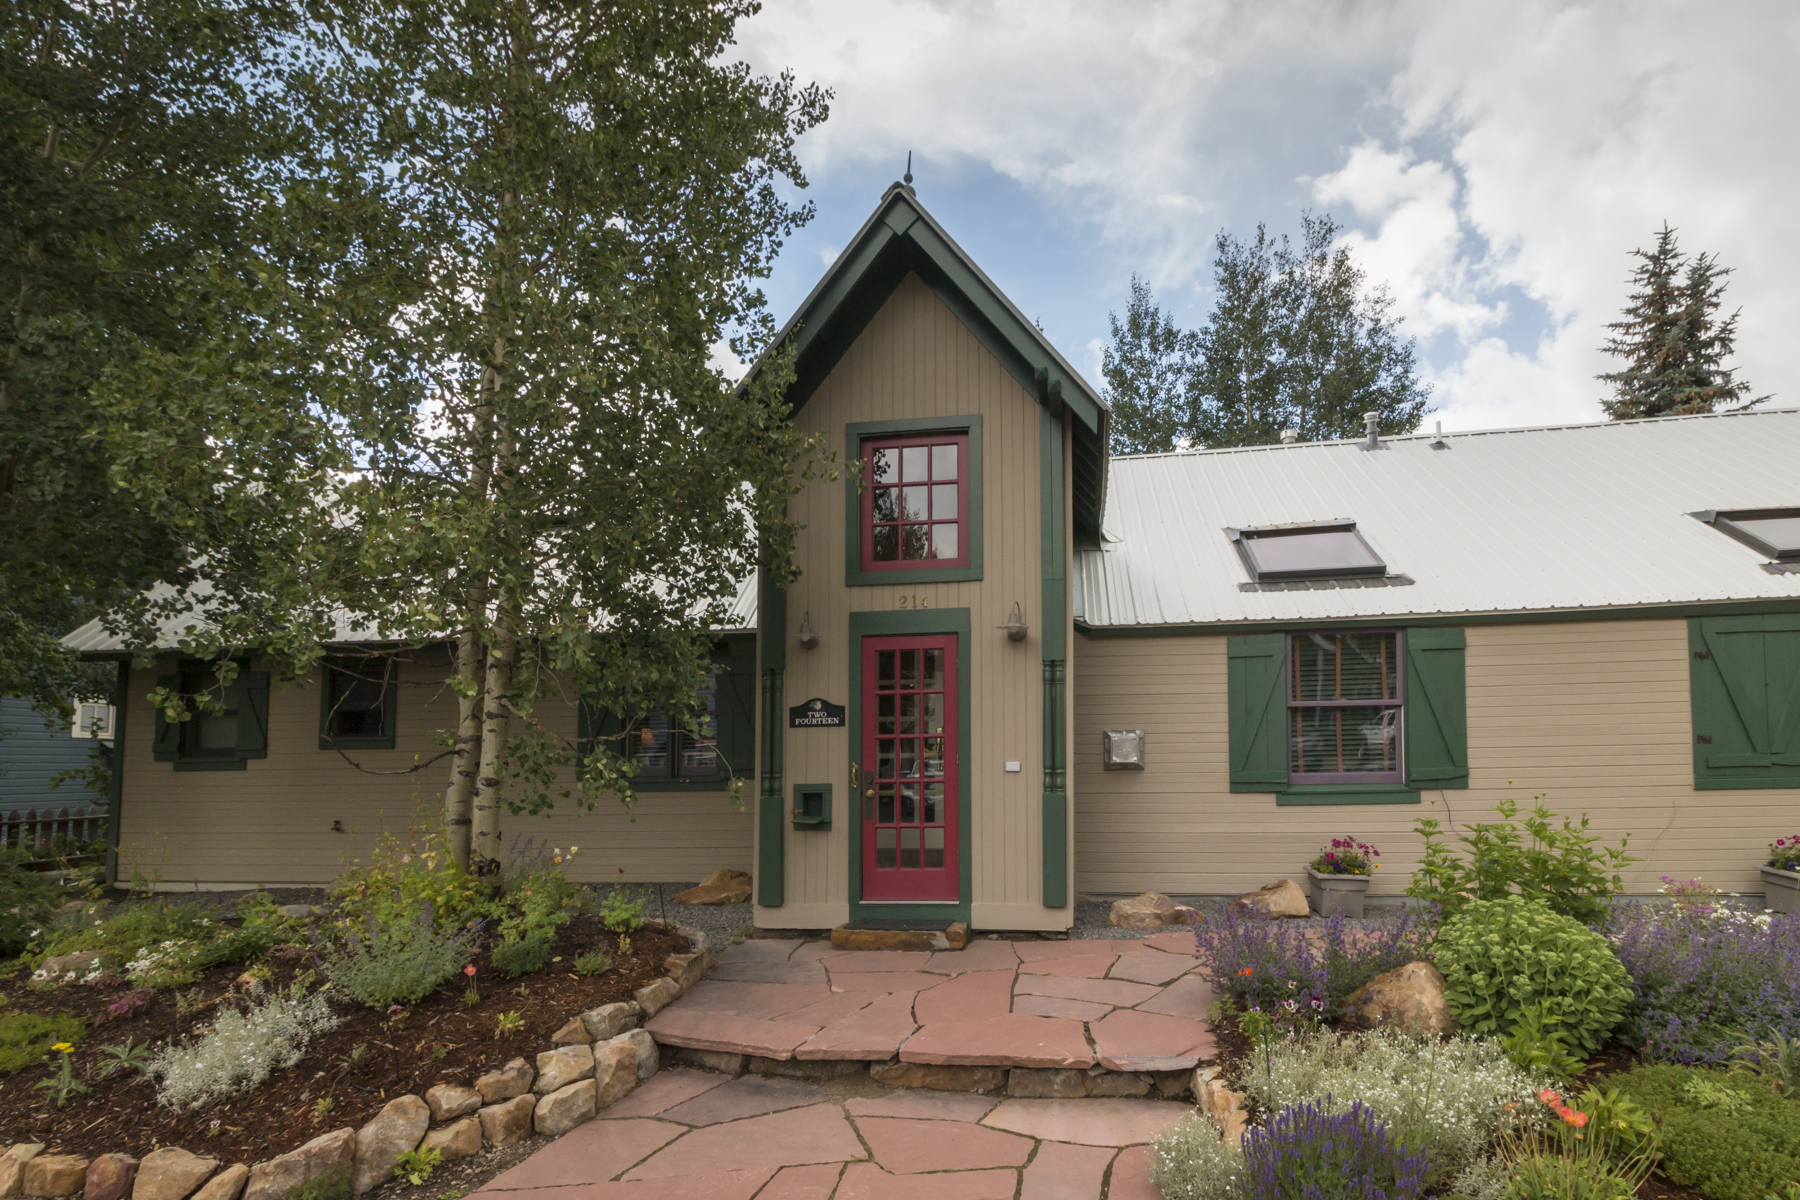 Casa Unifamiliar por un Venta en Unique Crested Butte Gem 214 Teocalli Avenue, Crested Butte, Colorado, 81224 Estados Unidos